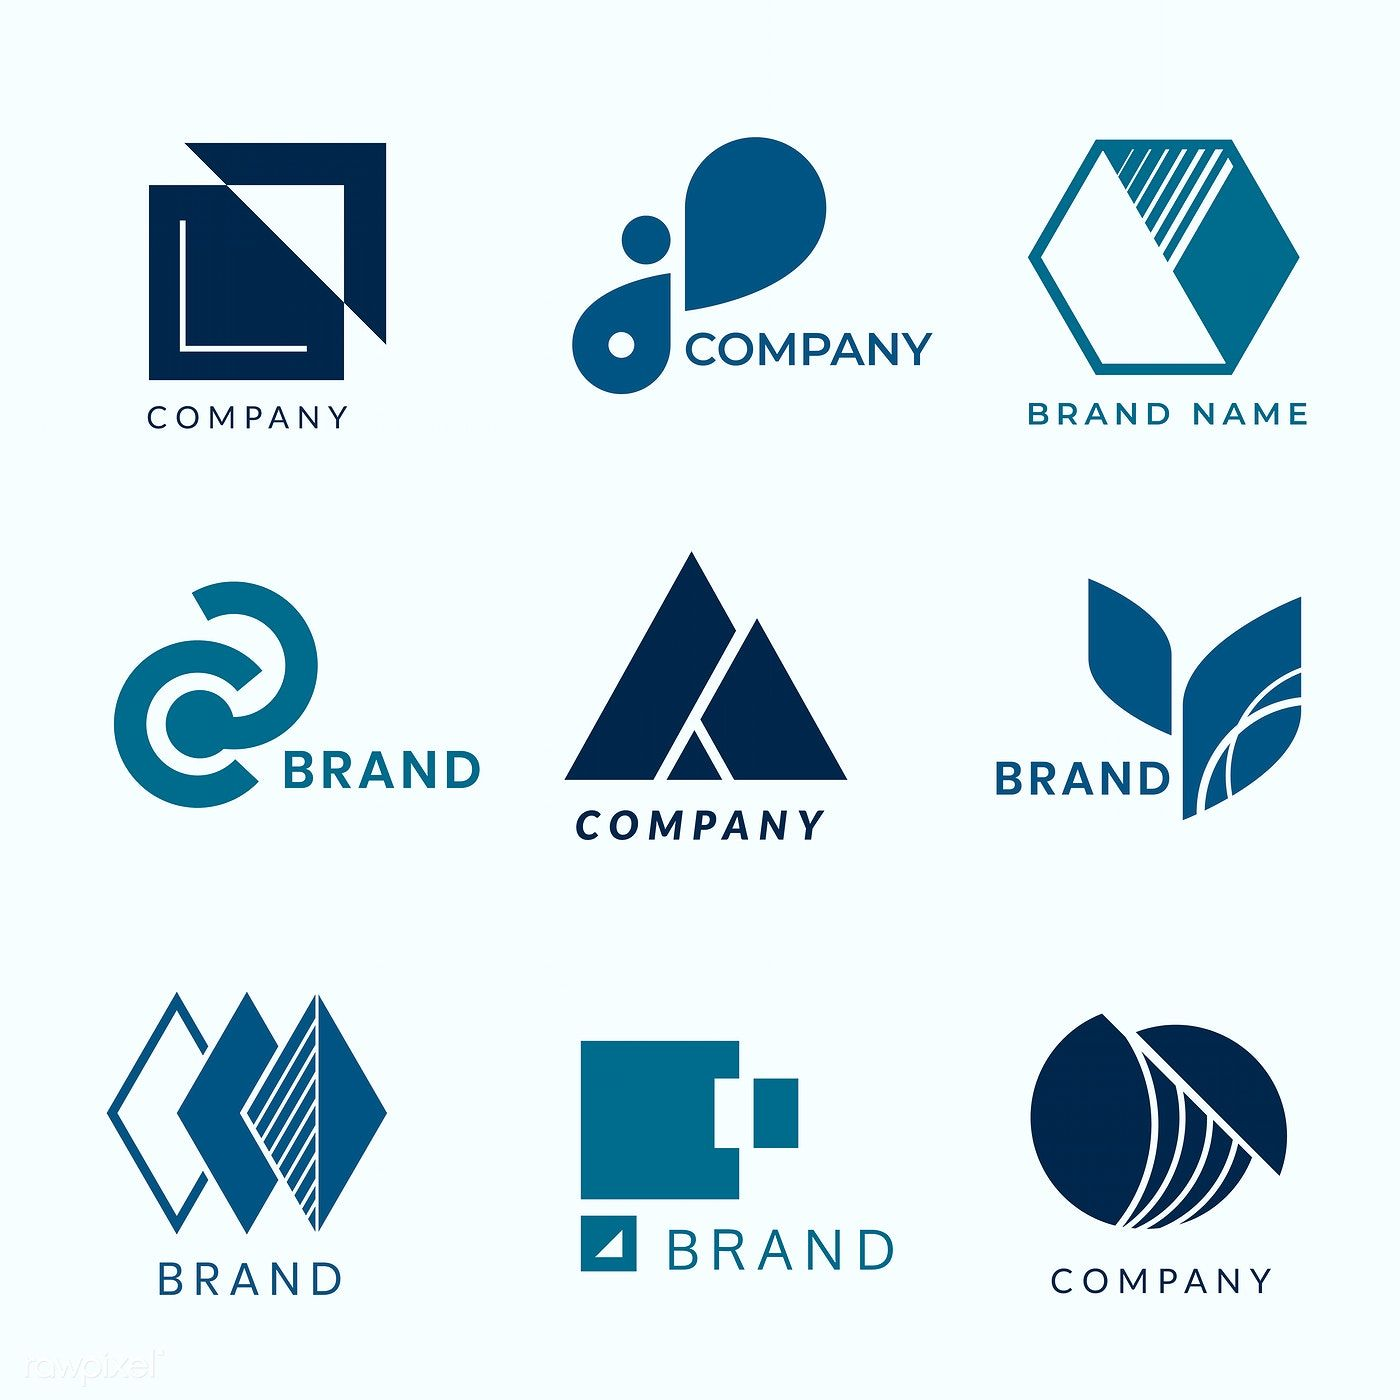 Download premium vector of Company branding logo designs